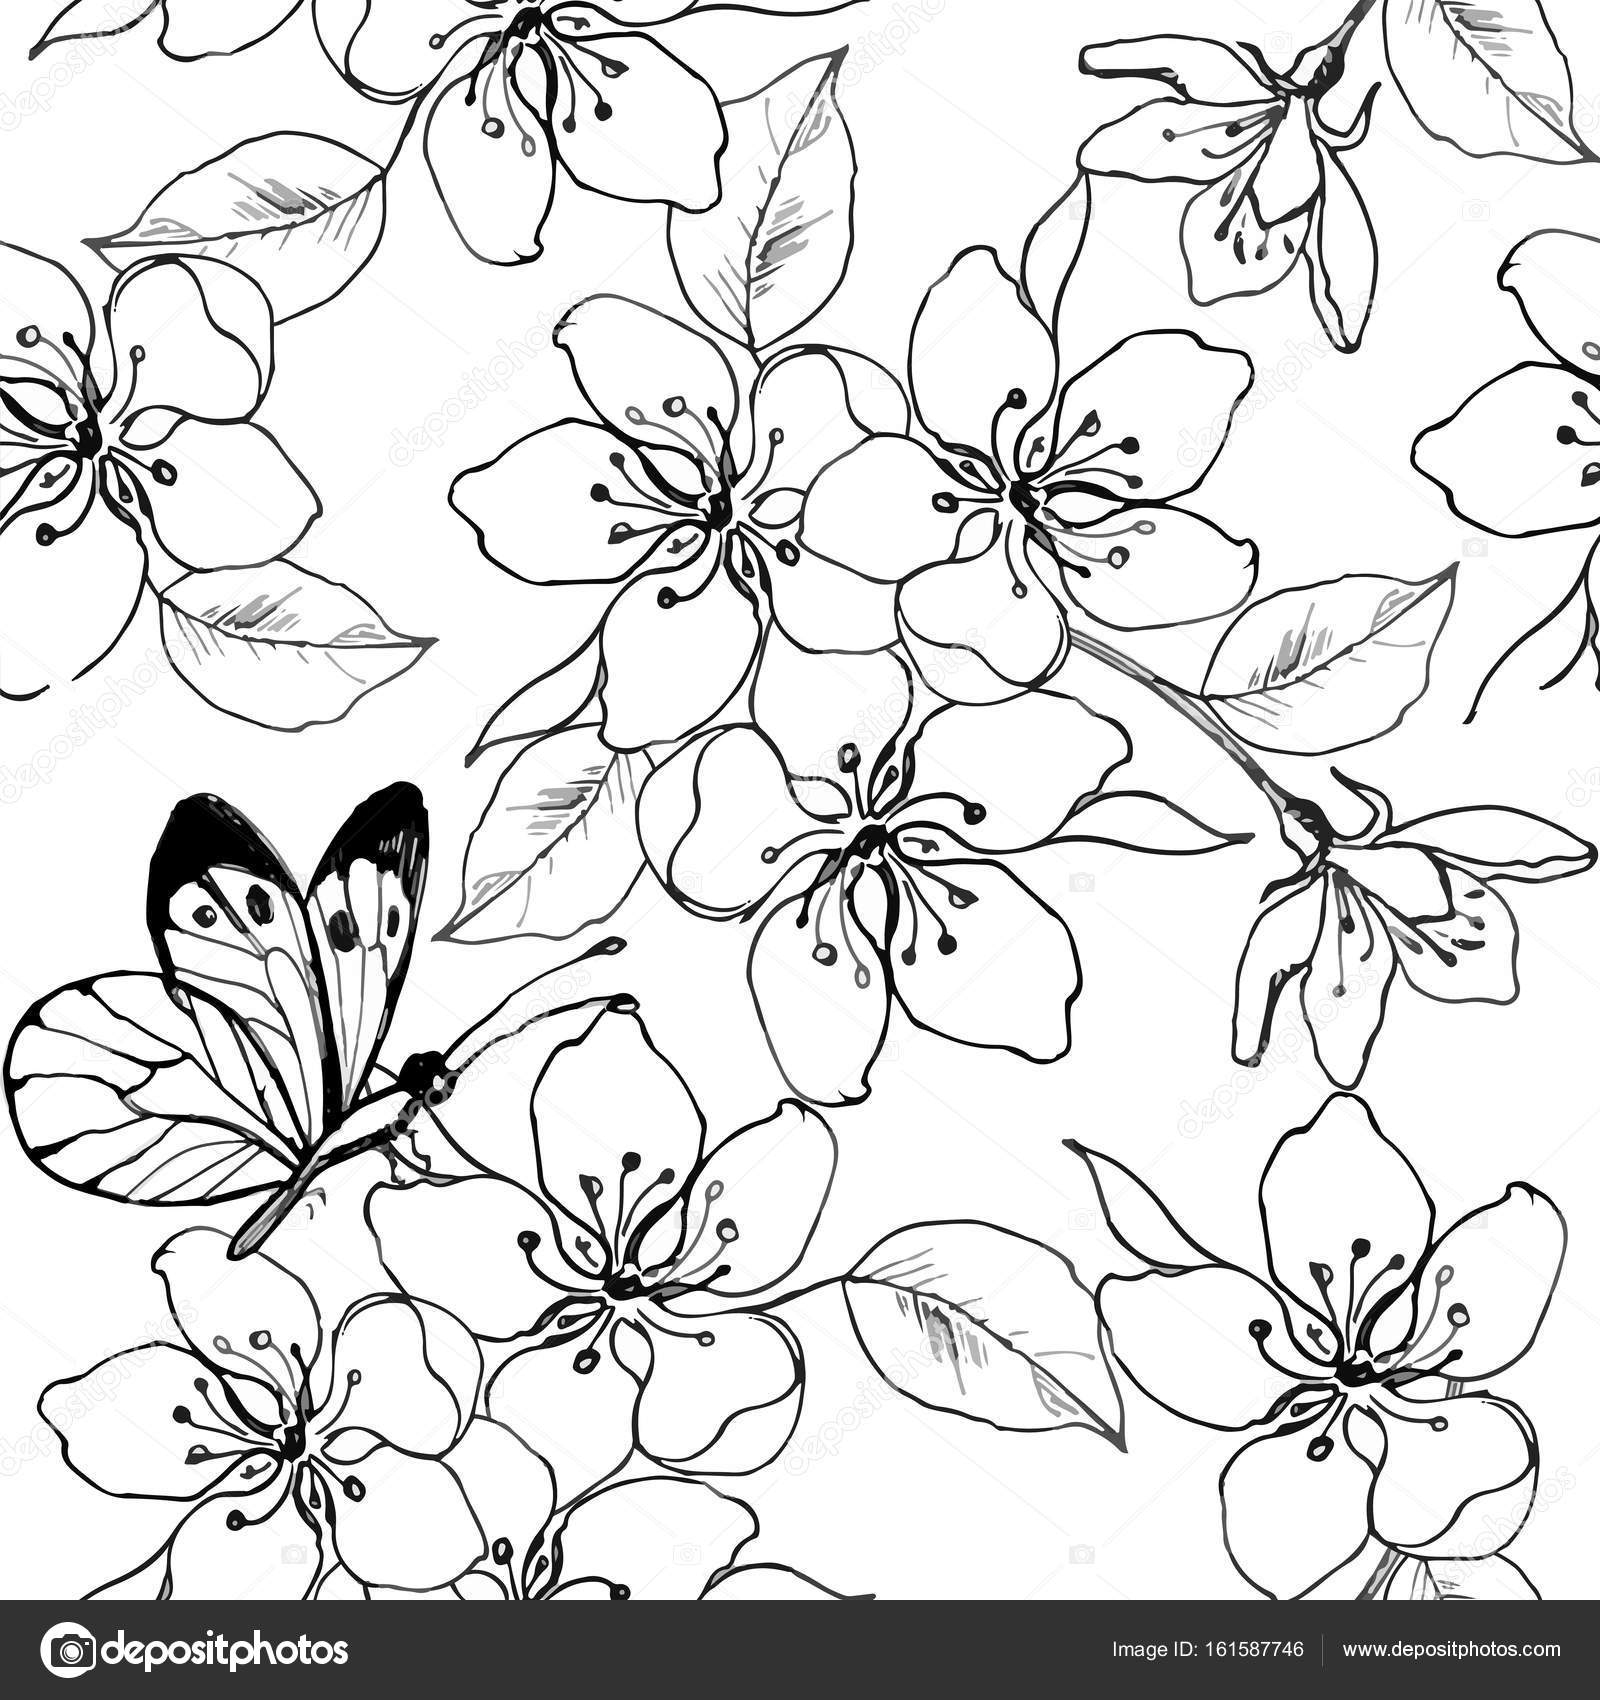 Apple Blossom Line Drawing At Getdrawings